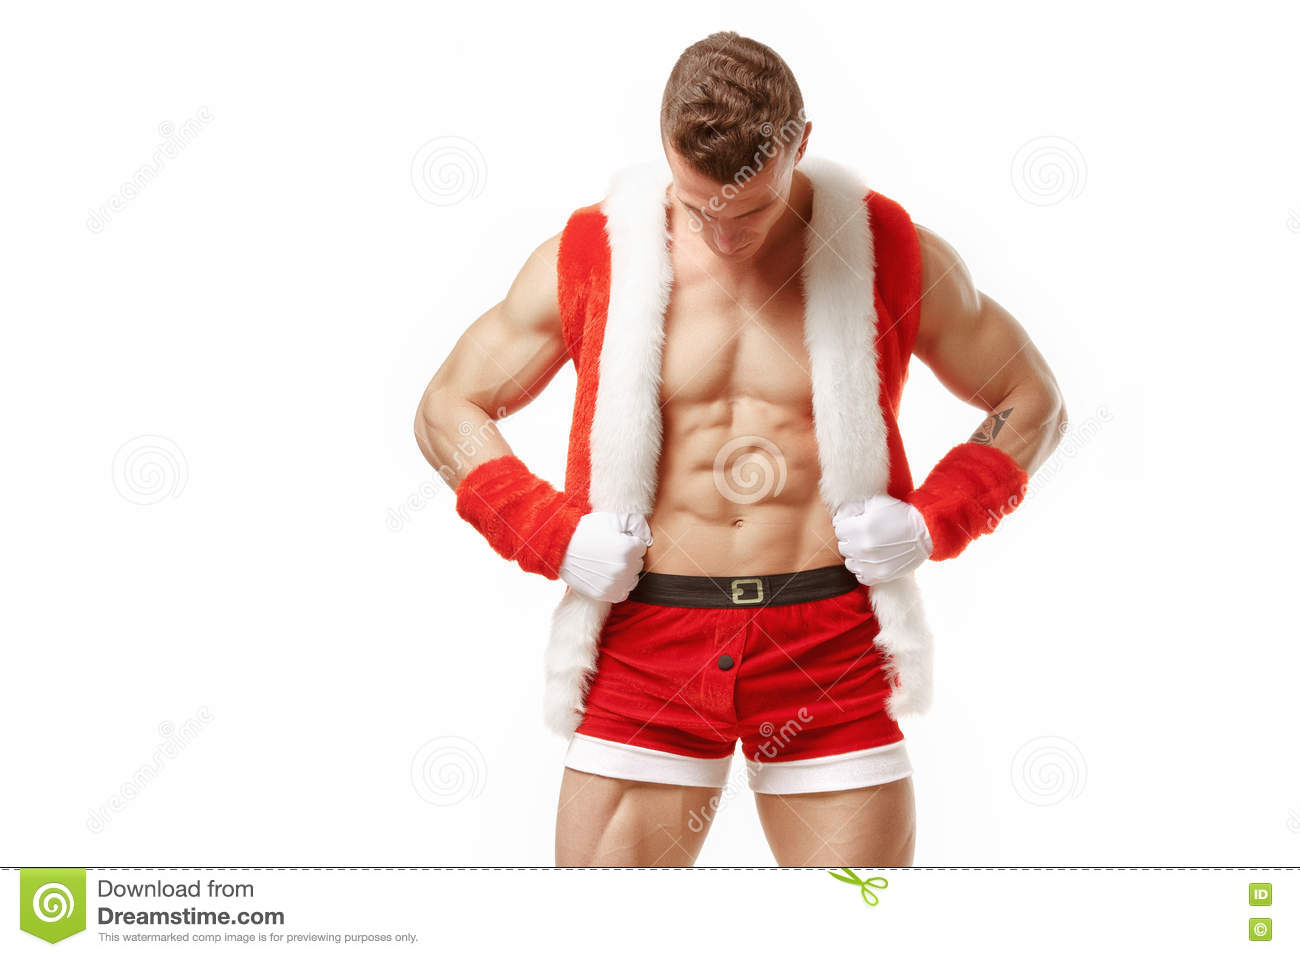 Fitness Santa Claus showing six pack abs.